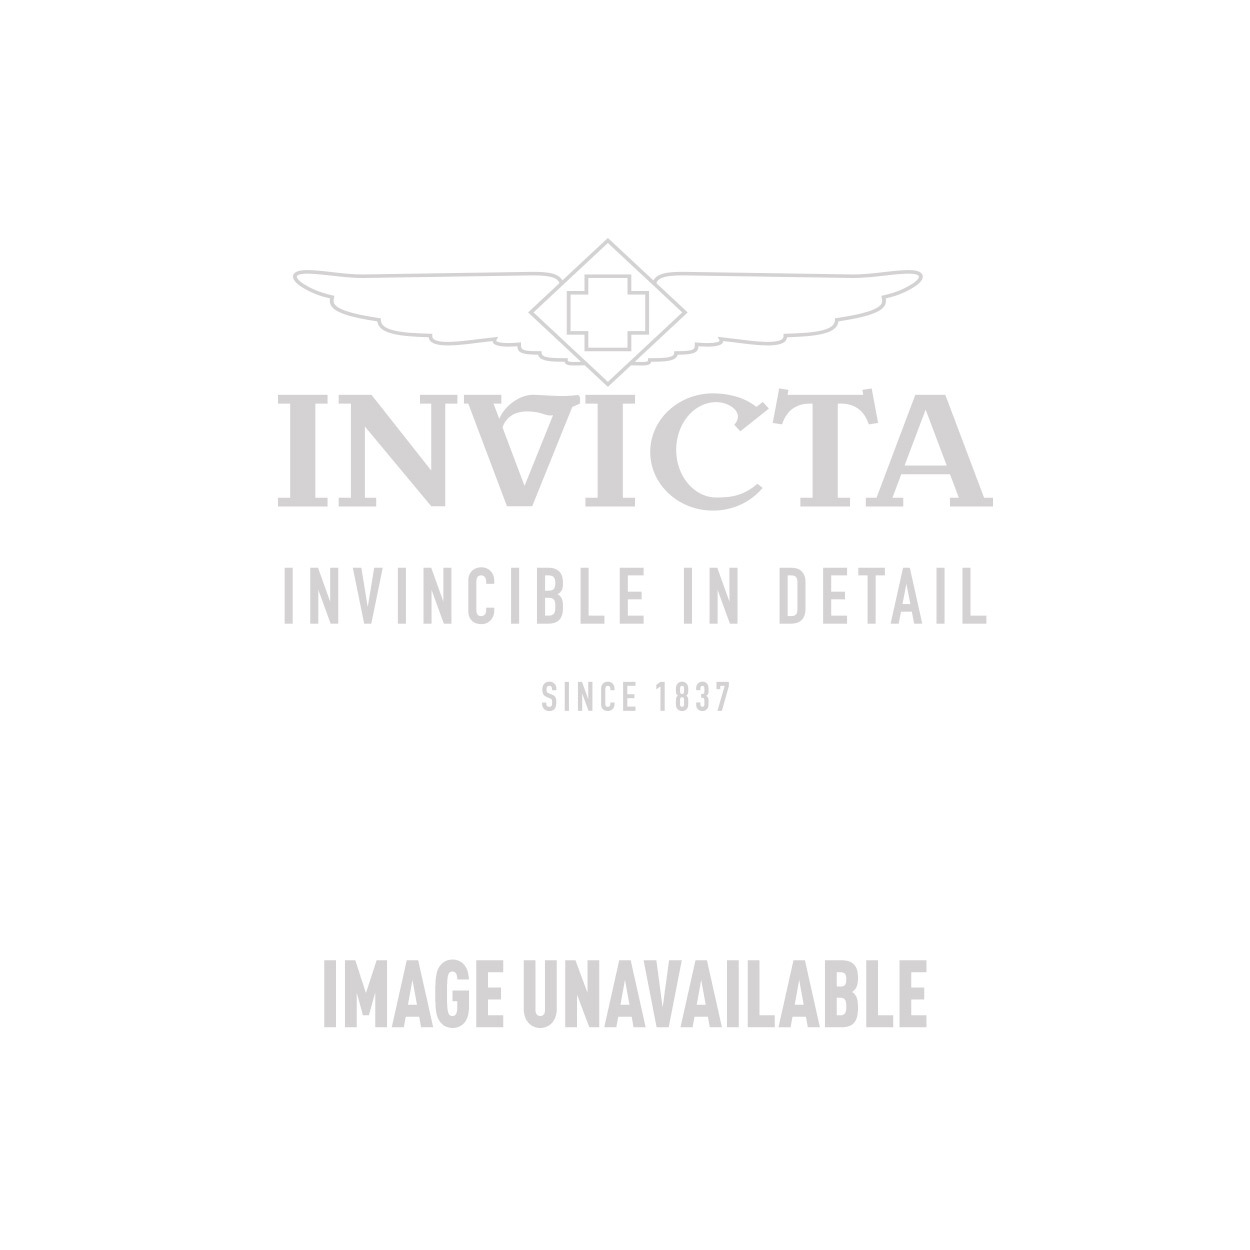 Invicta Specialty Swiss Movement Quartz Watch - Stainless Steel case with Black tone Leather band - Model 12171